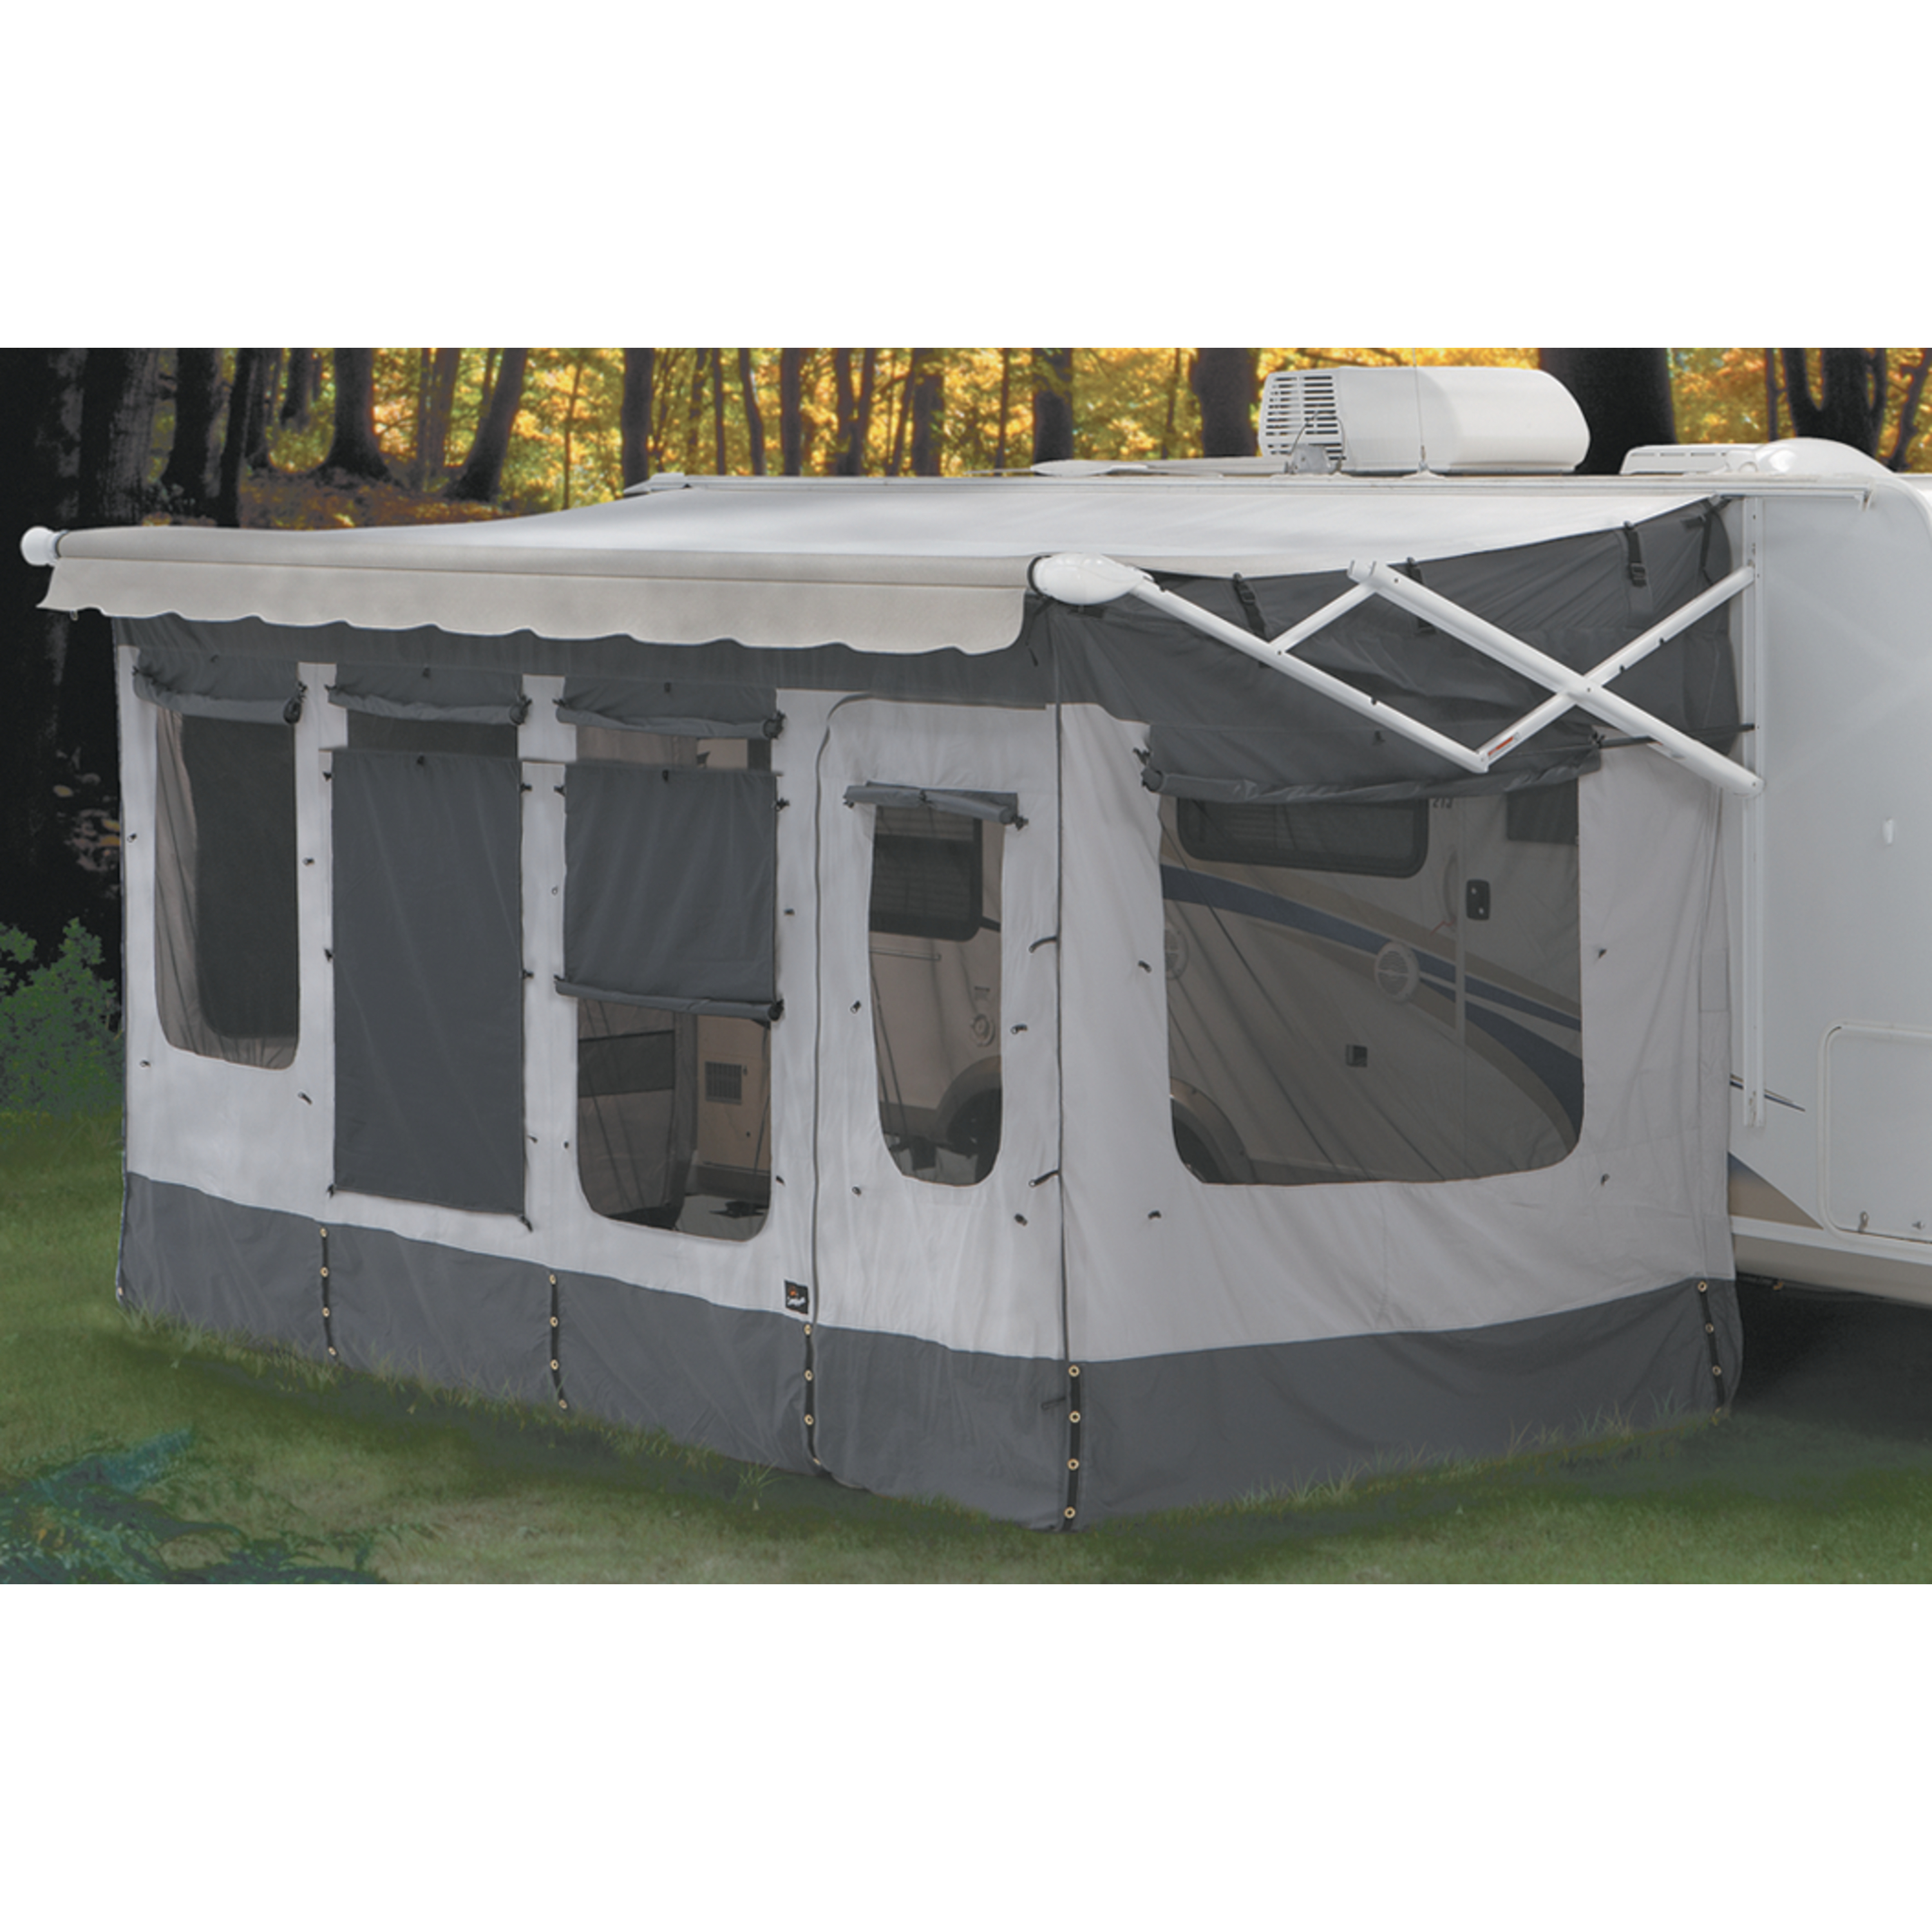 Carefree Vacation'r Screen Room for RV Awning